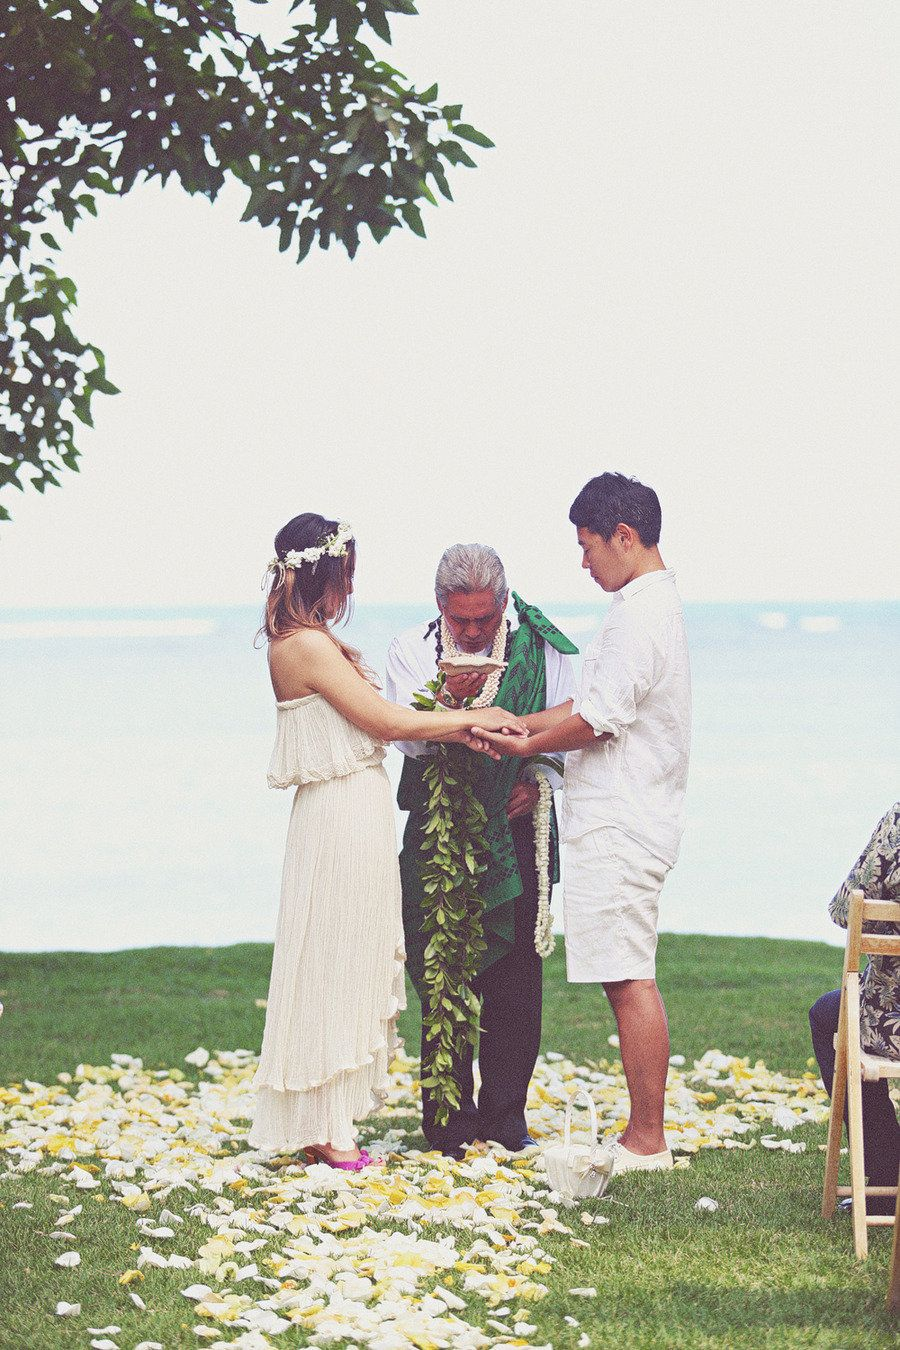 Hawaii Wedding at The Bayer Estate from Beloved Photo Boutique  Read more - http://www.stylemepretty.com/destination-weddings/2012/11/30/hawaii-wedding-at-the-bayer-estate-from-beloved-photo-boutique/